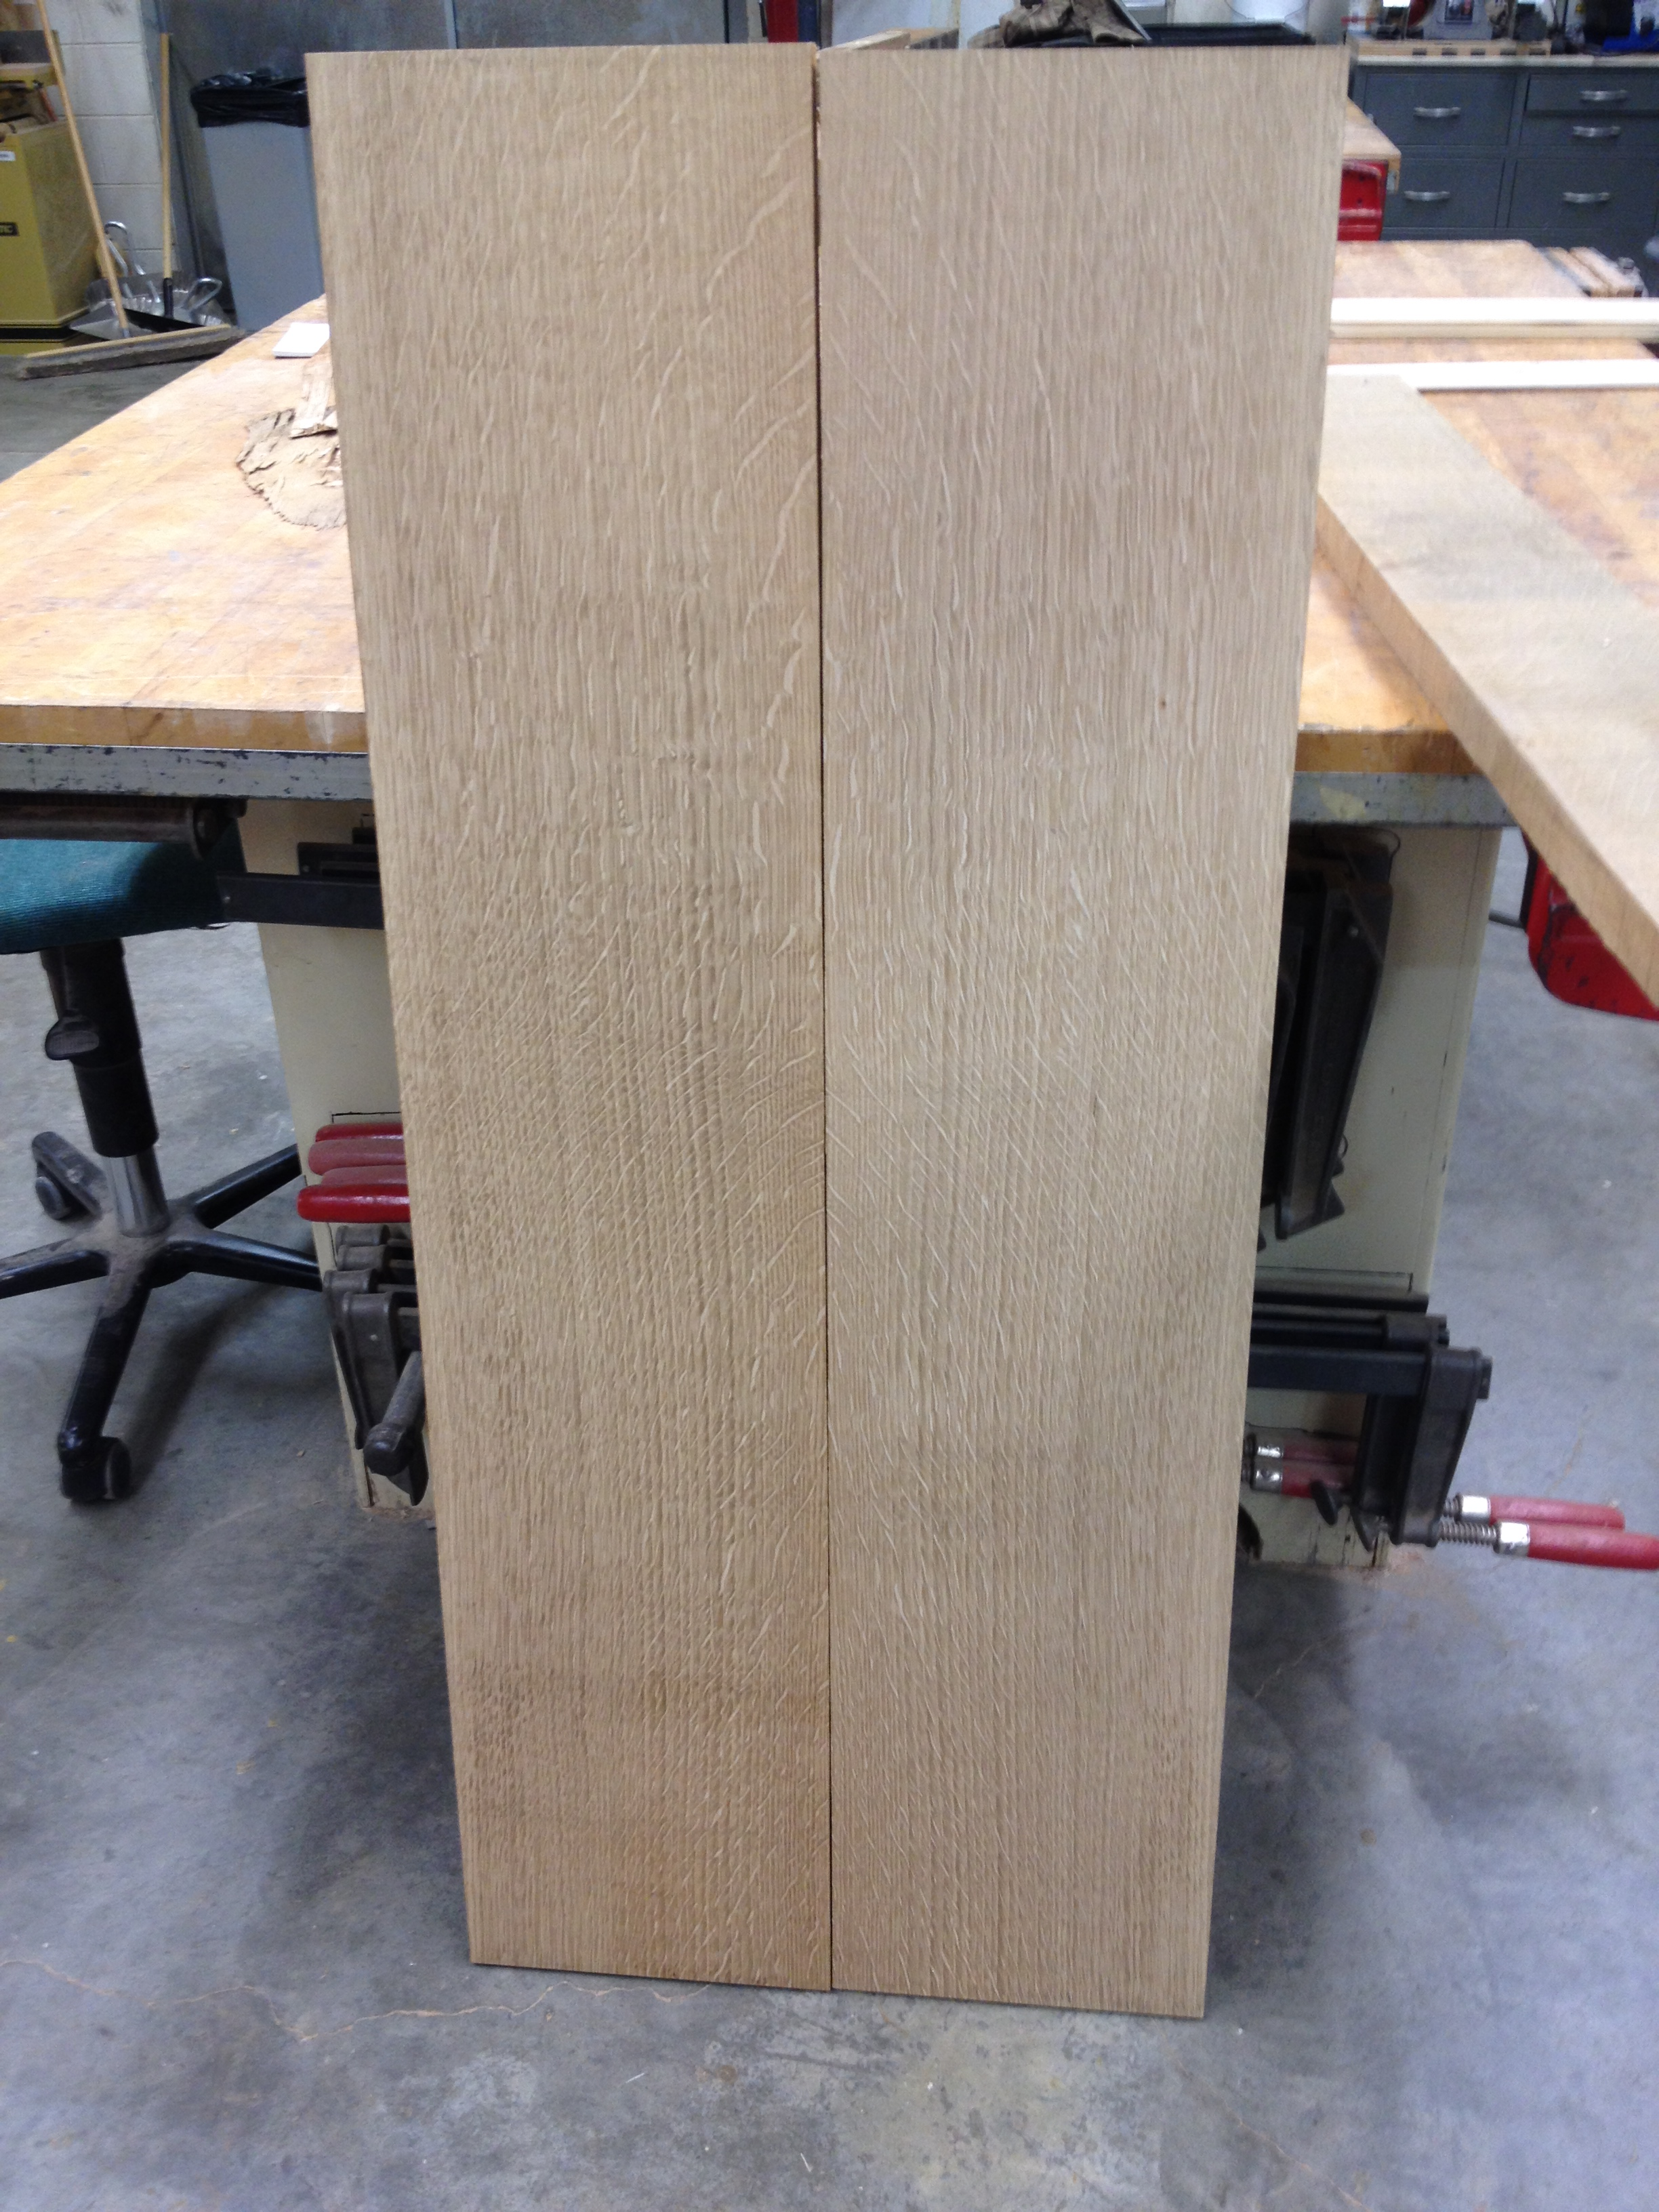 One of the bookmatched quartersawn white oak table tops ready to glue.